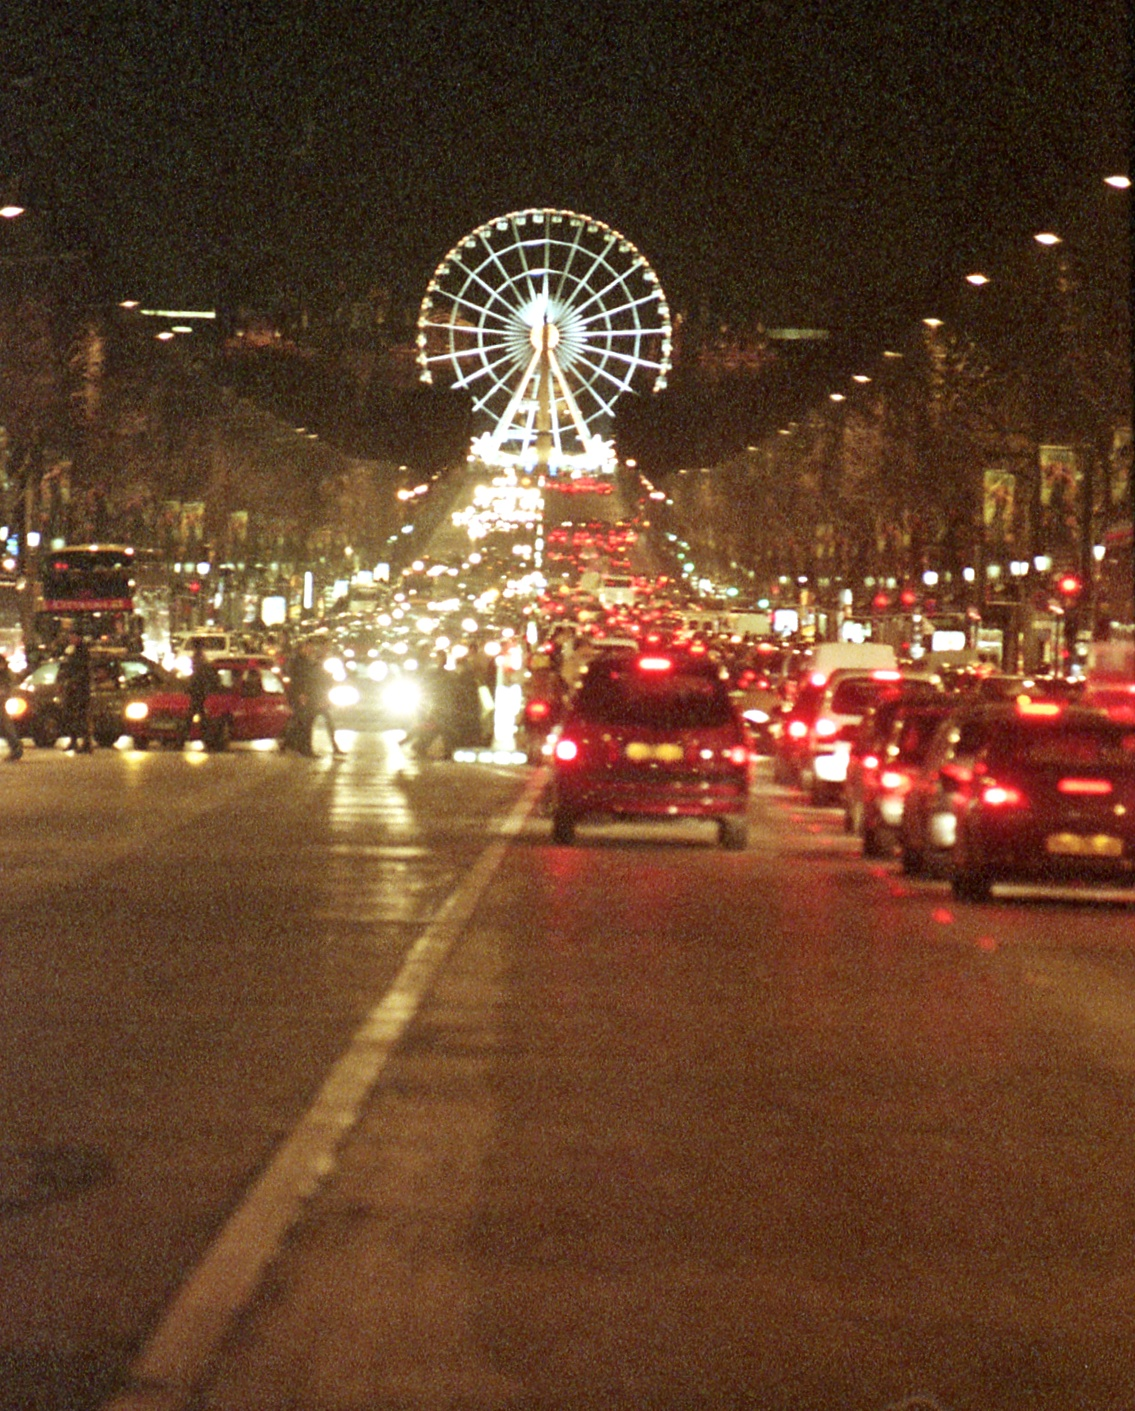 CHAMPS ELYSEES MILLENIUM WHEEL